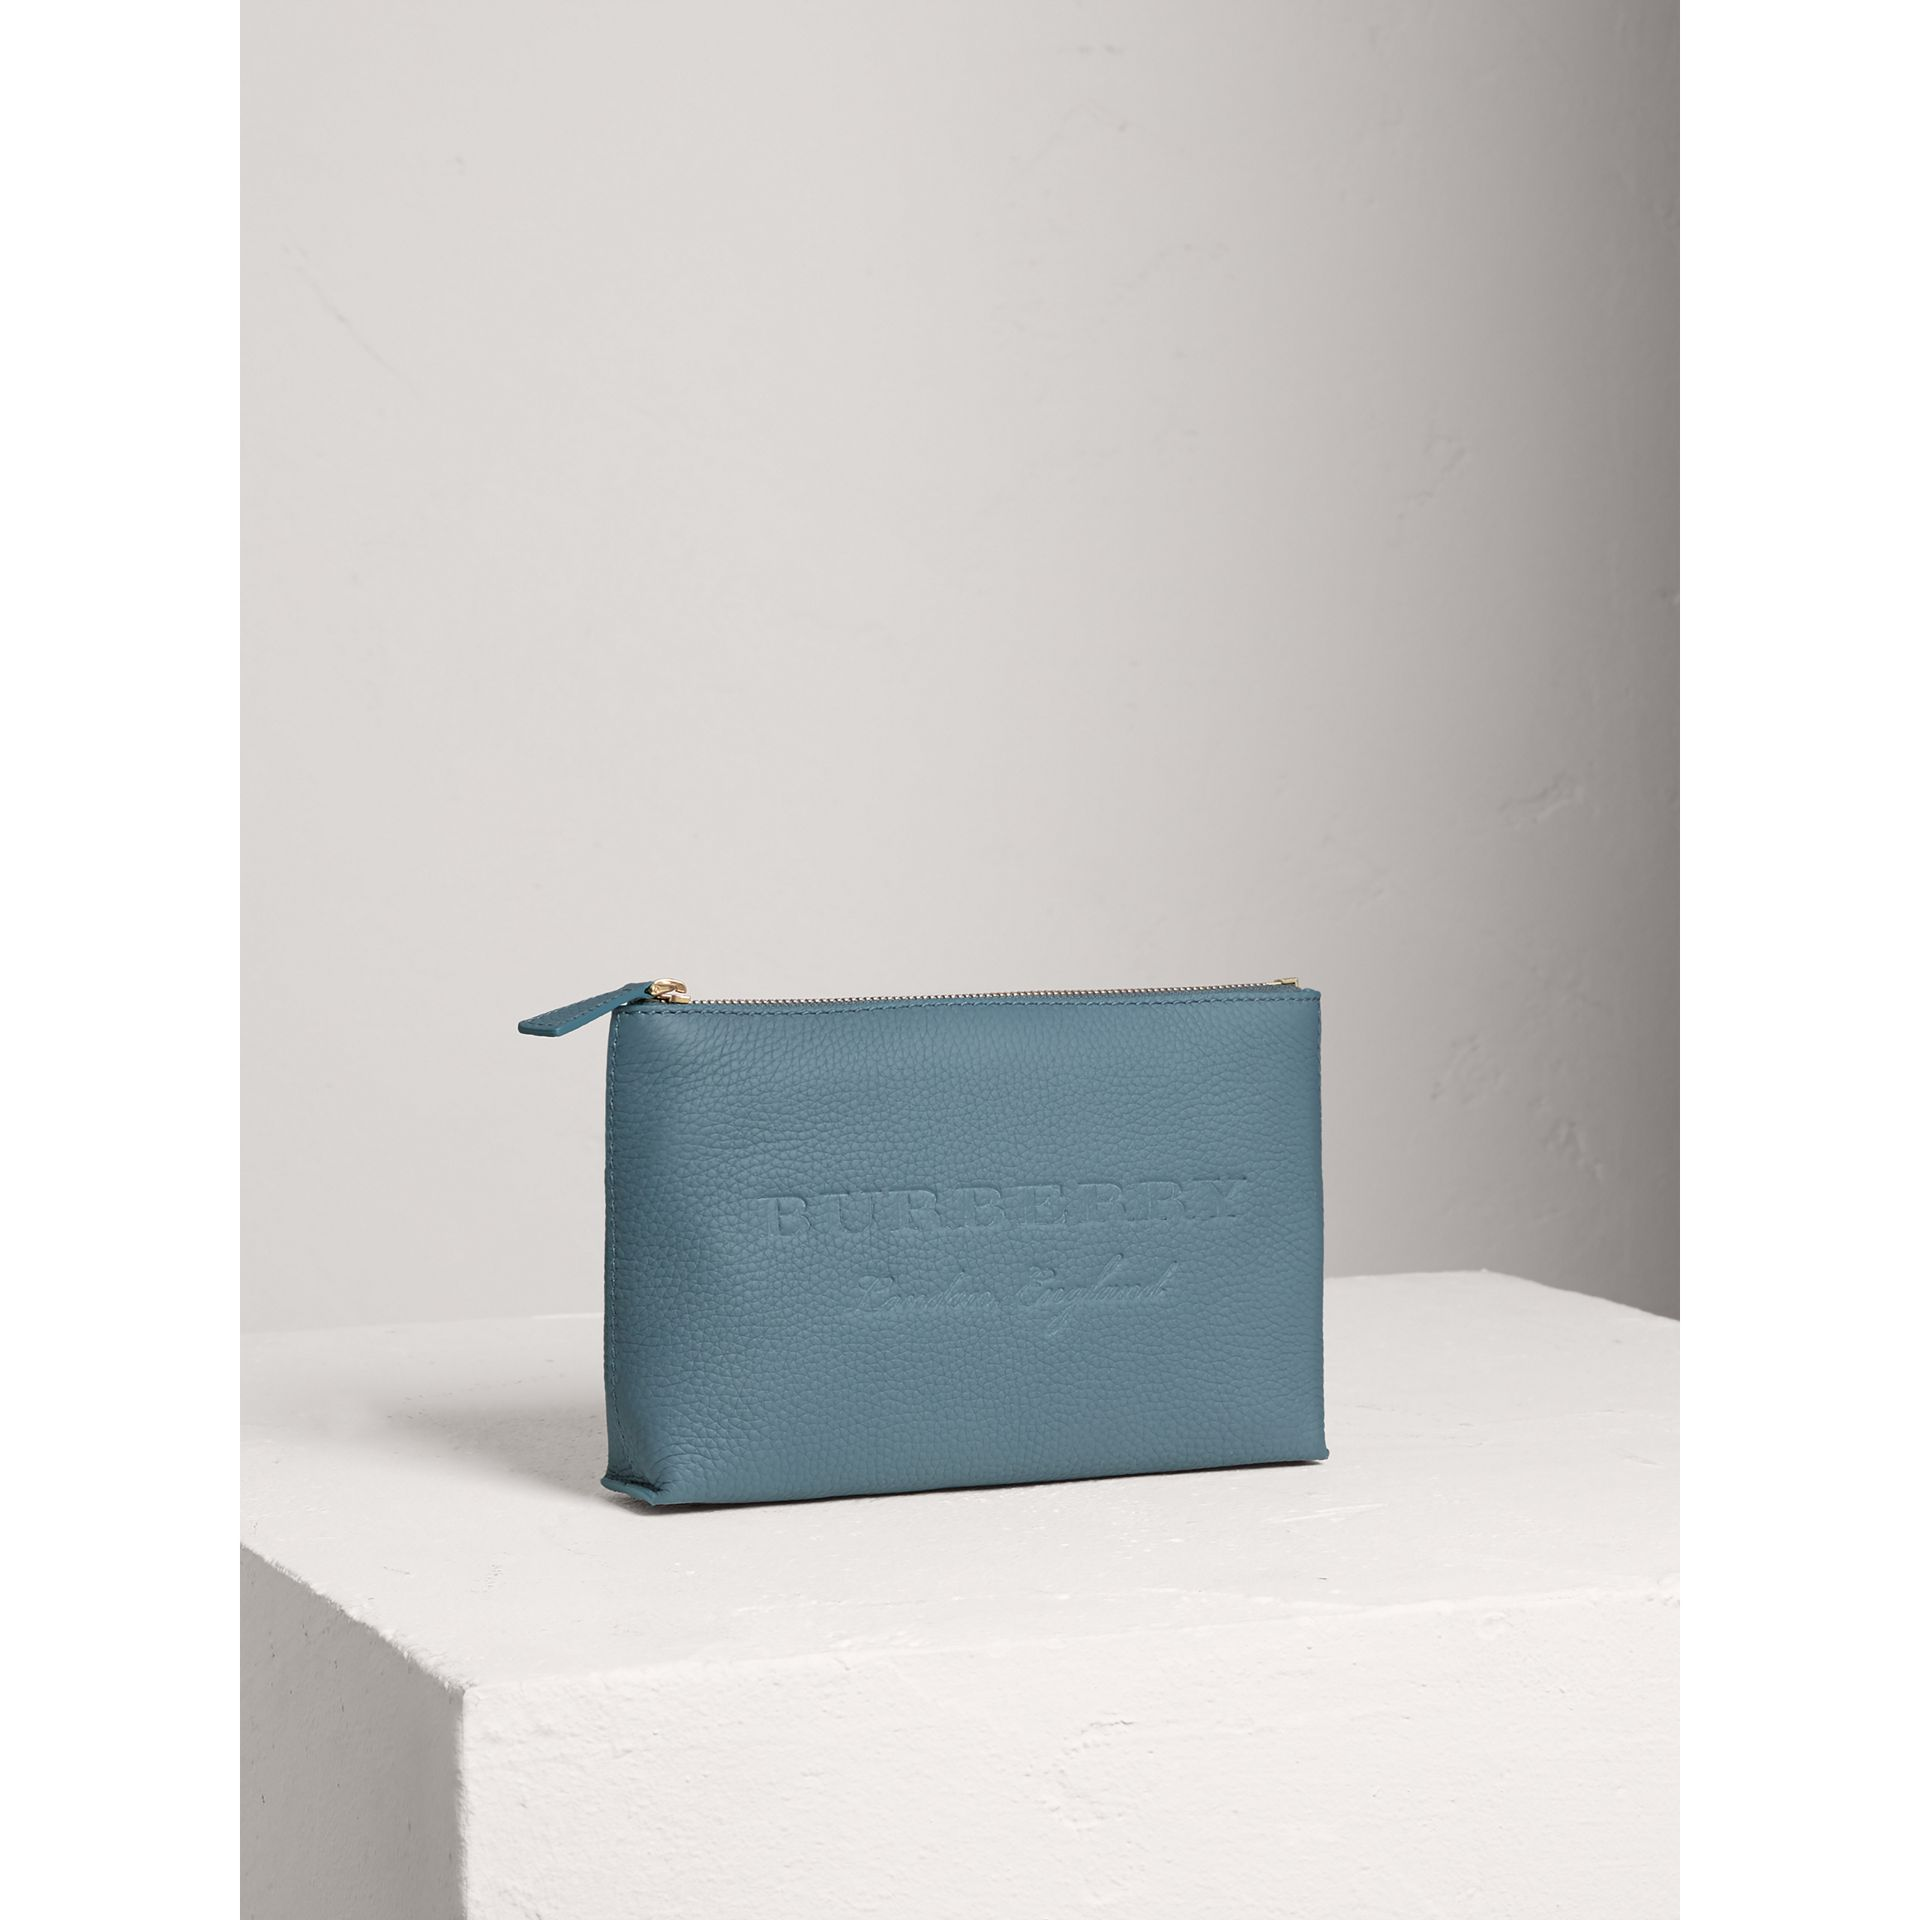 Medium Embossed Leather Zip Pouch in Dusty Teal Blue | Burberry - gallery image 4